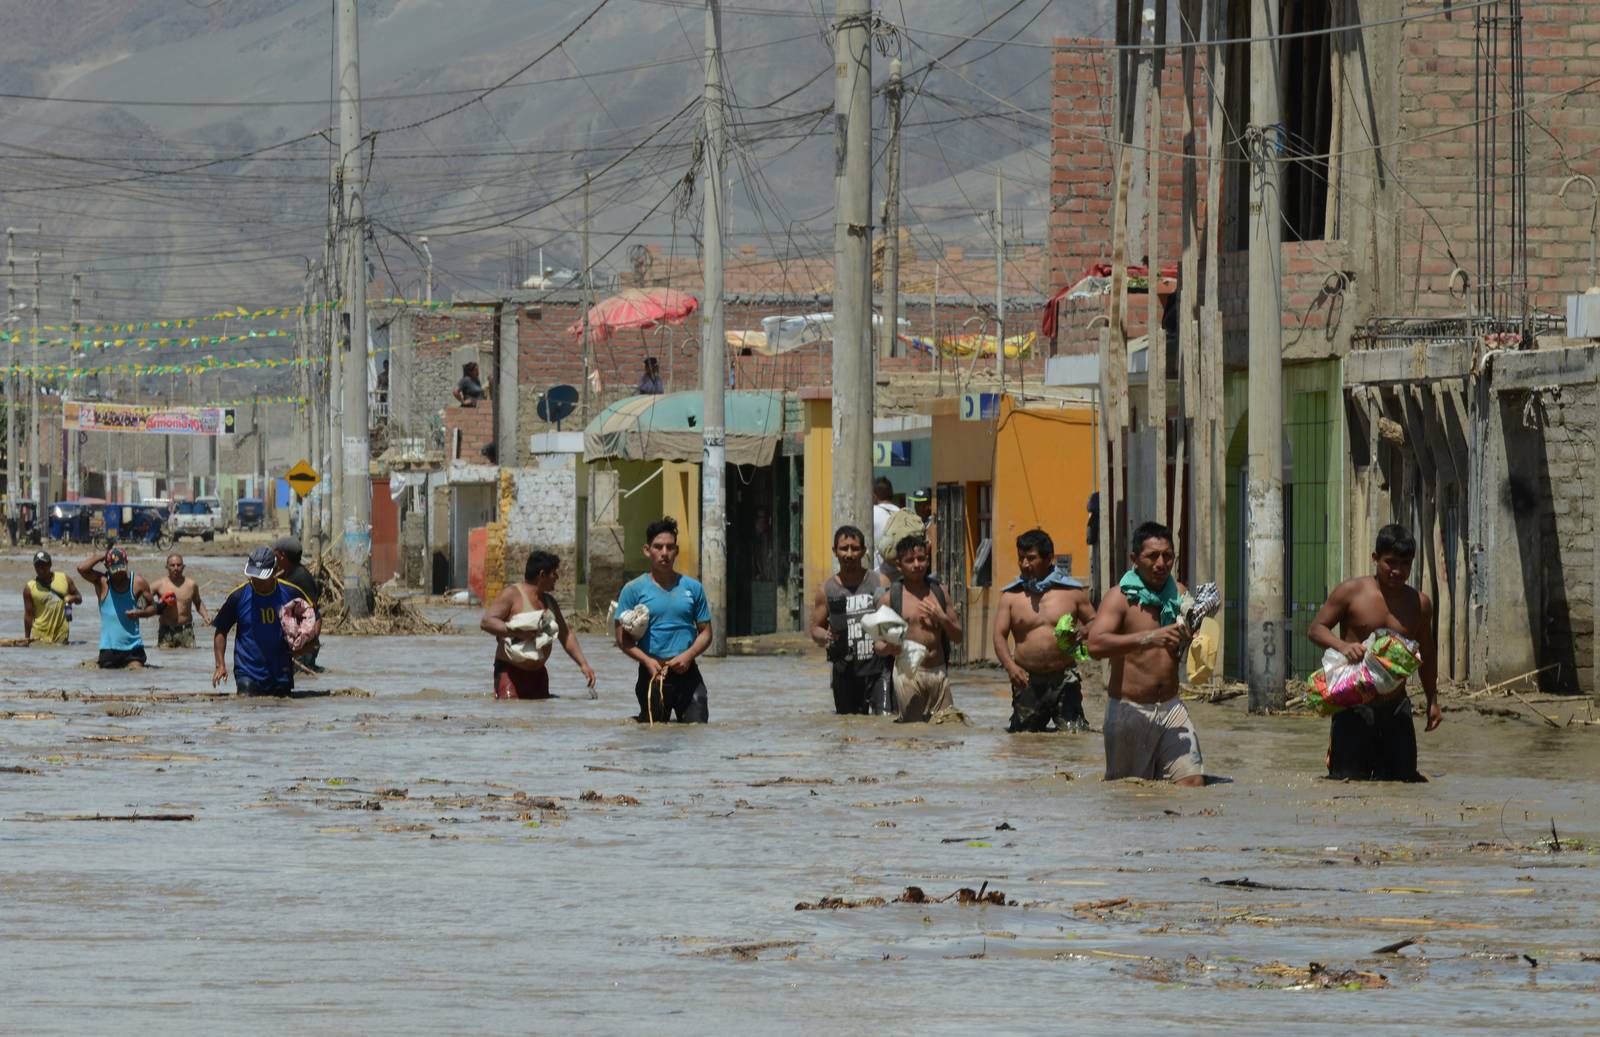 Peru's flooding has left tens of thousands of people homeless